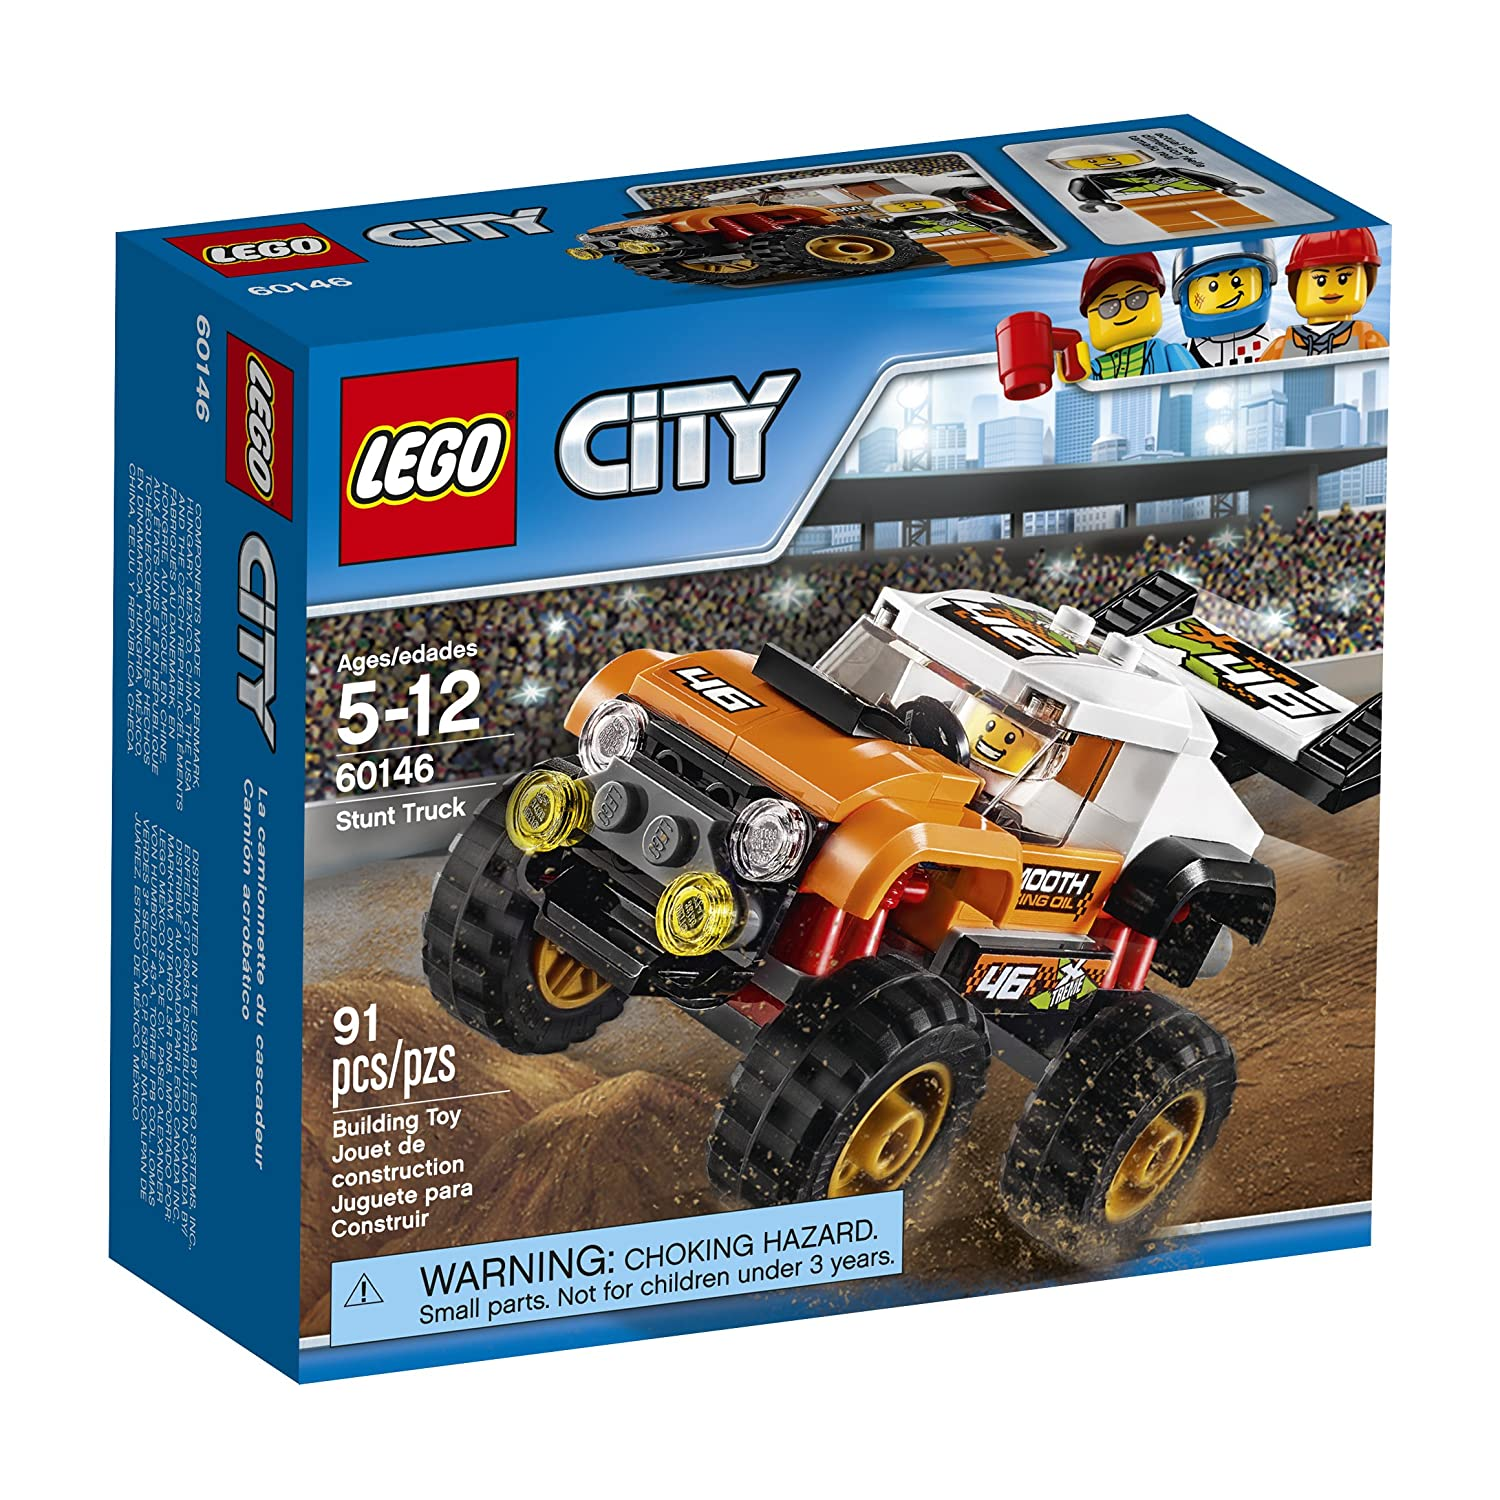 image of Lego city stunt truck set in a box for boys